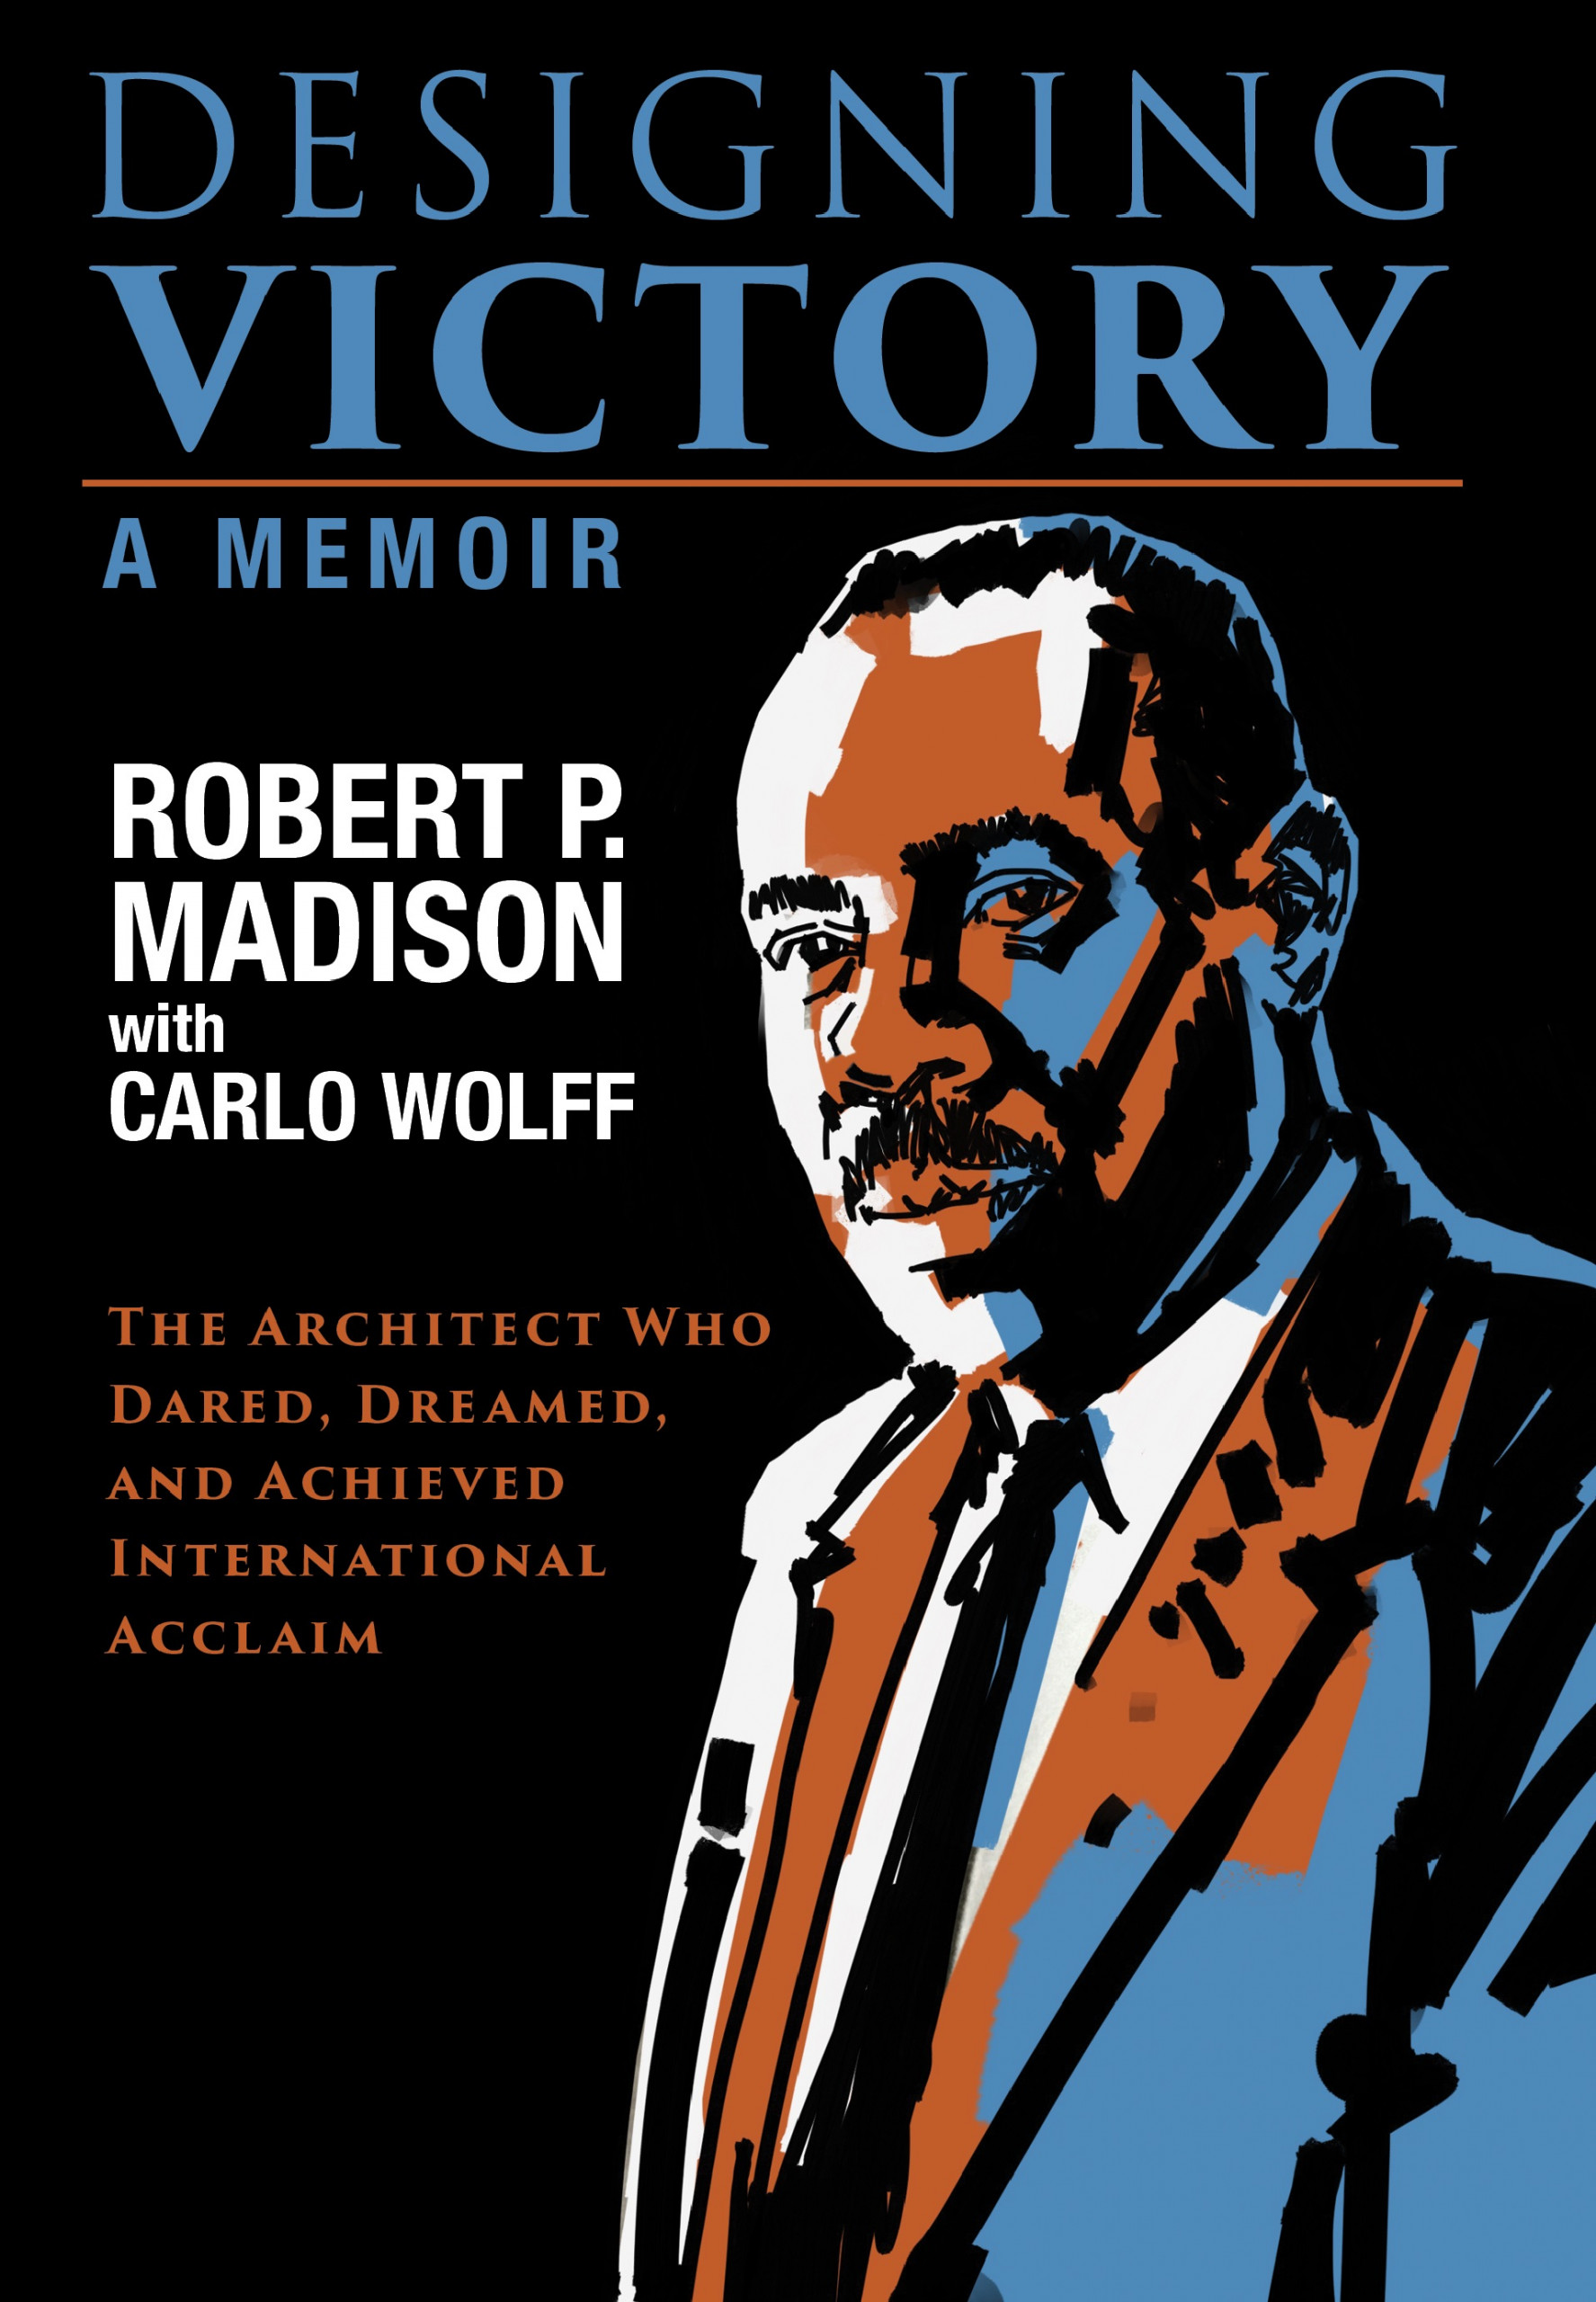 Designing Victory: A Memoir: The Architect Who Dared, Dreamed, and Achieved International Acclaim